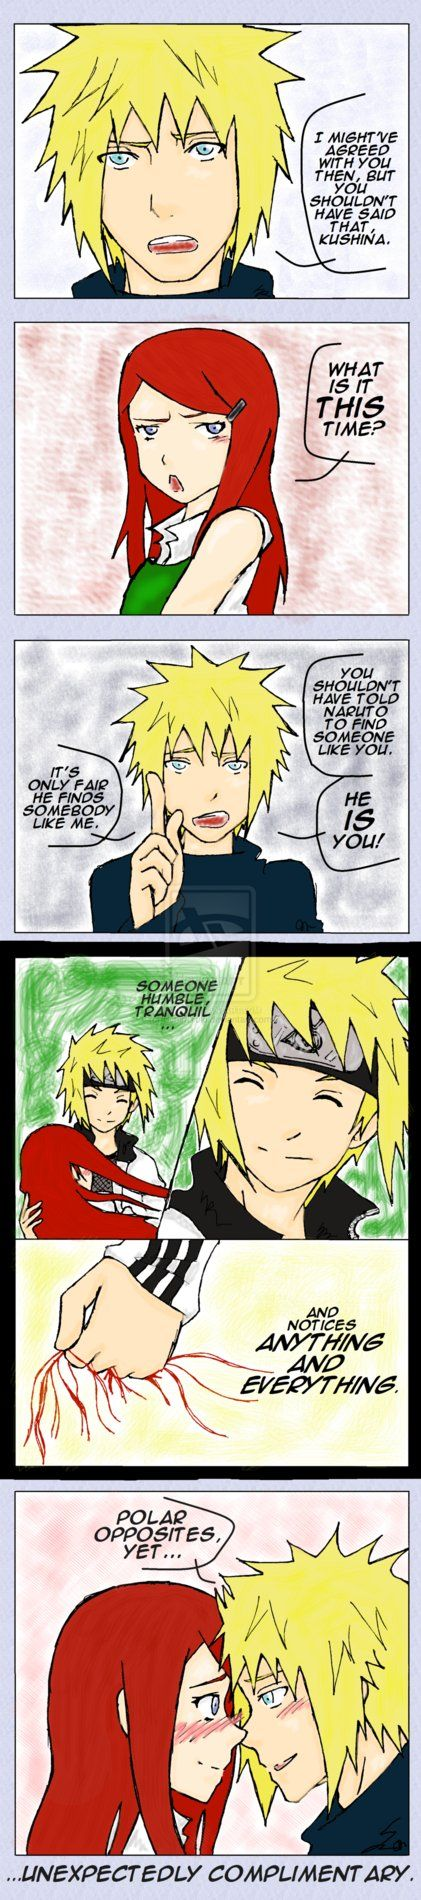 120 best images about Naruto Life on Pinterest   Jokes